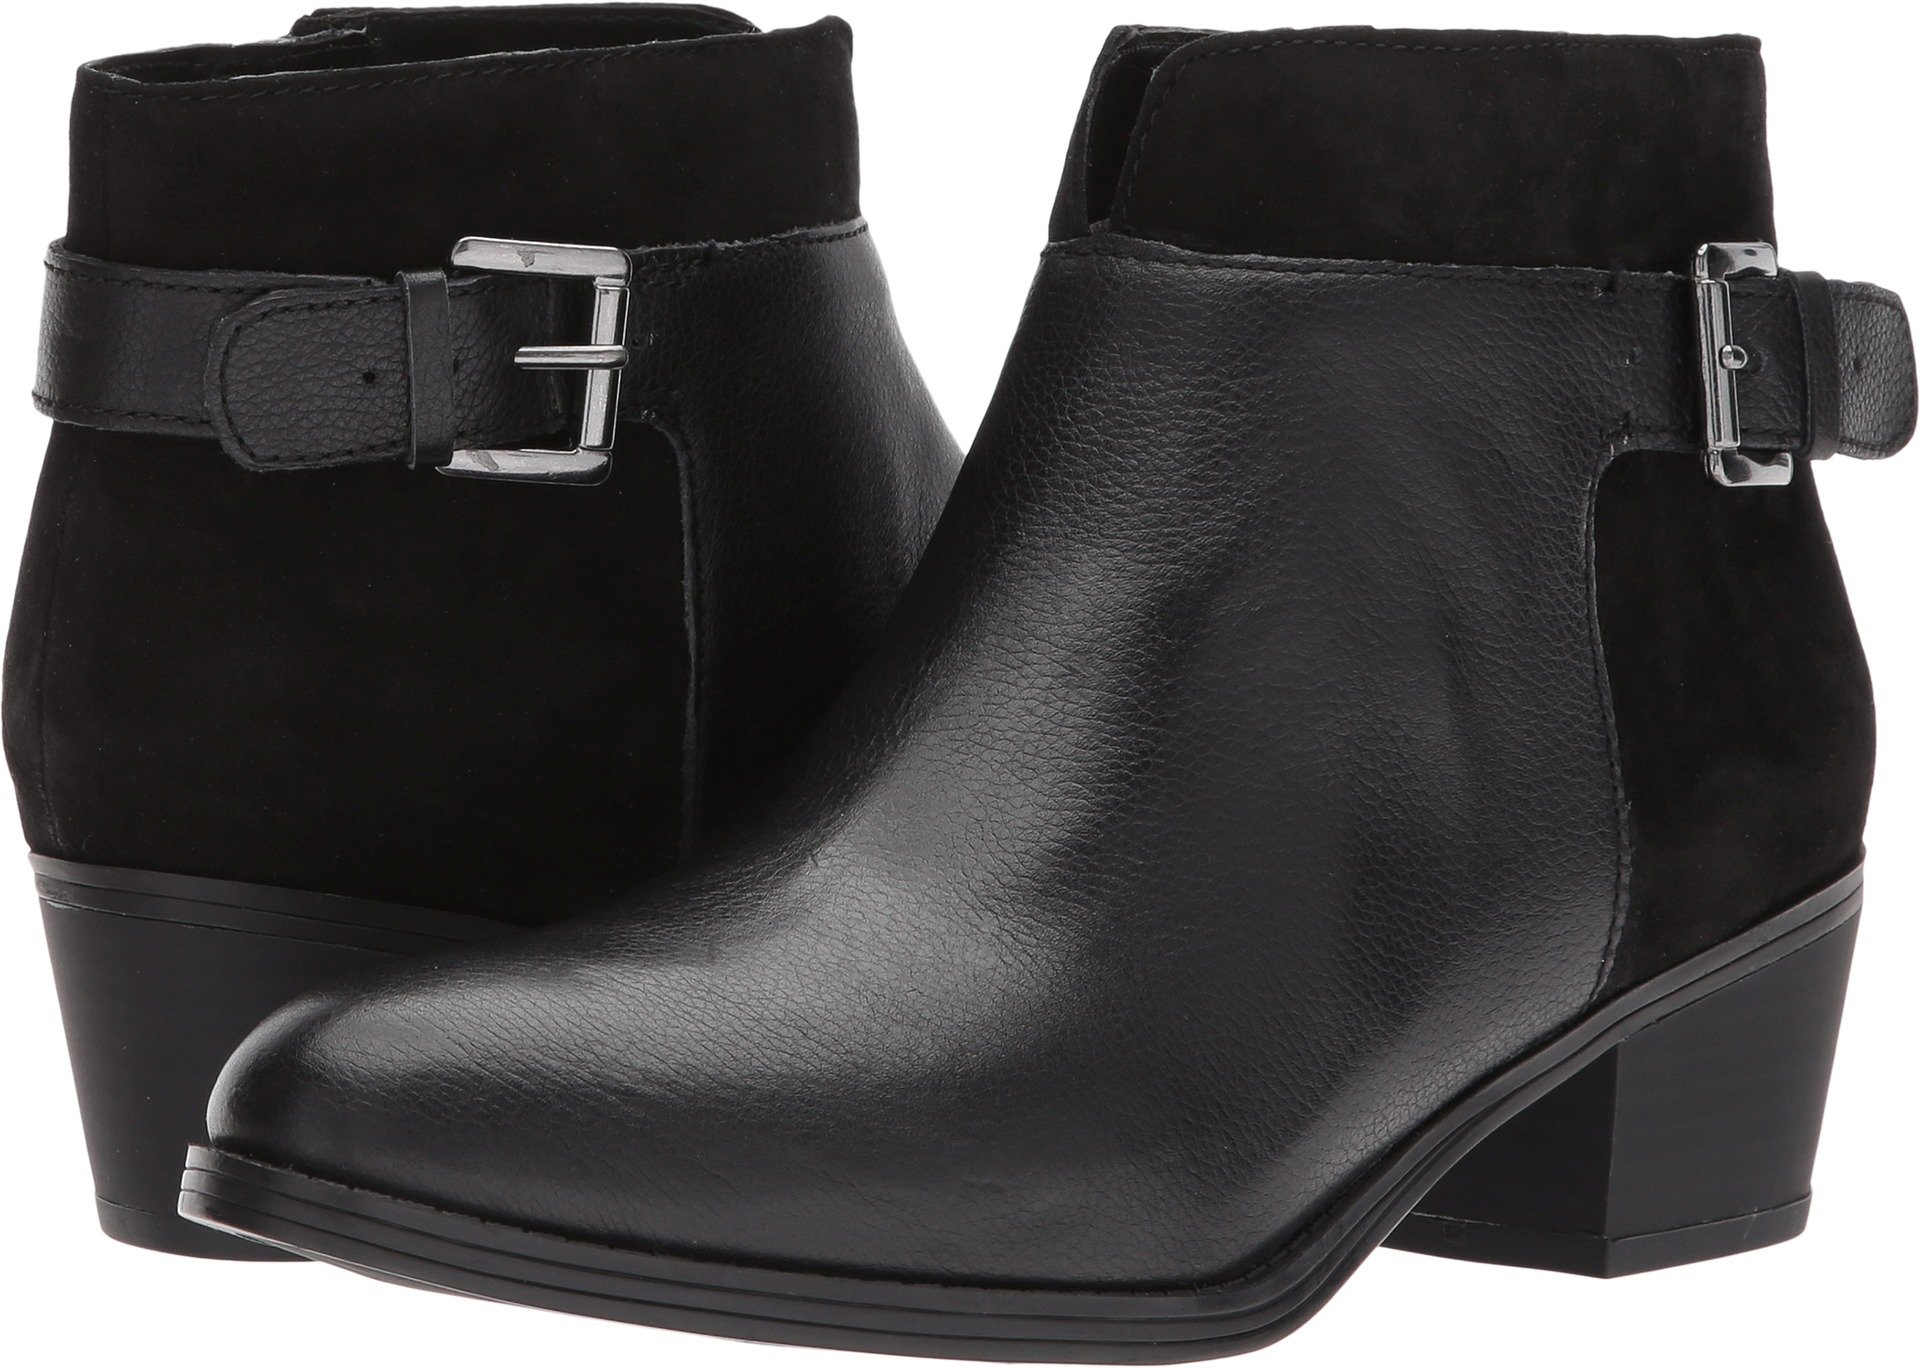 Naturalizer Women's Wanya Black Leather/Suede 8.5 M US